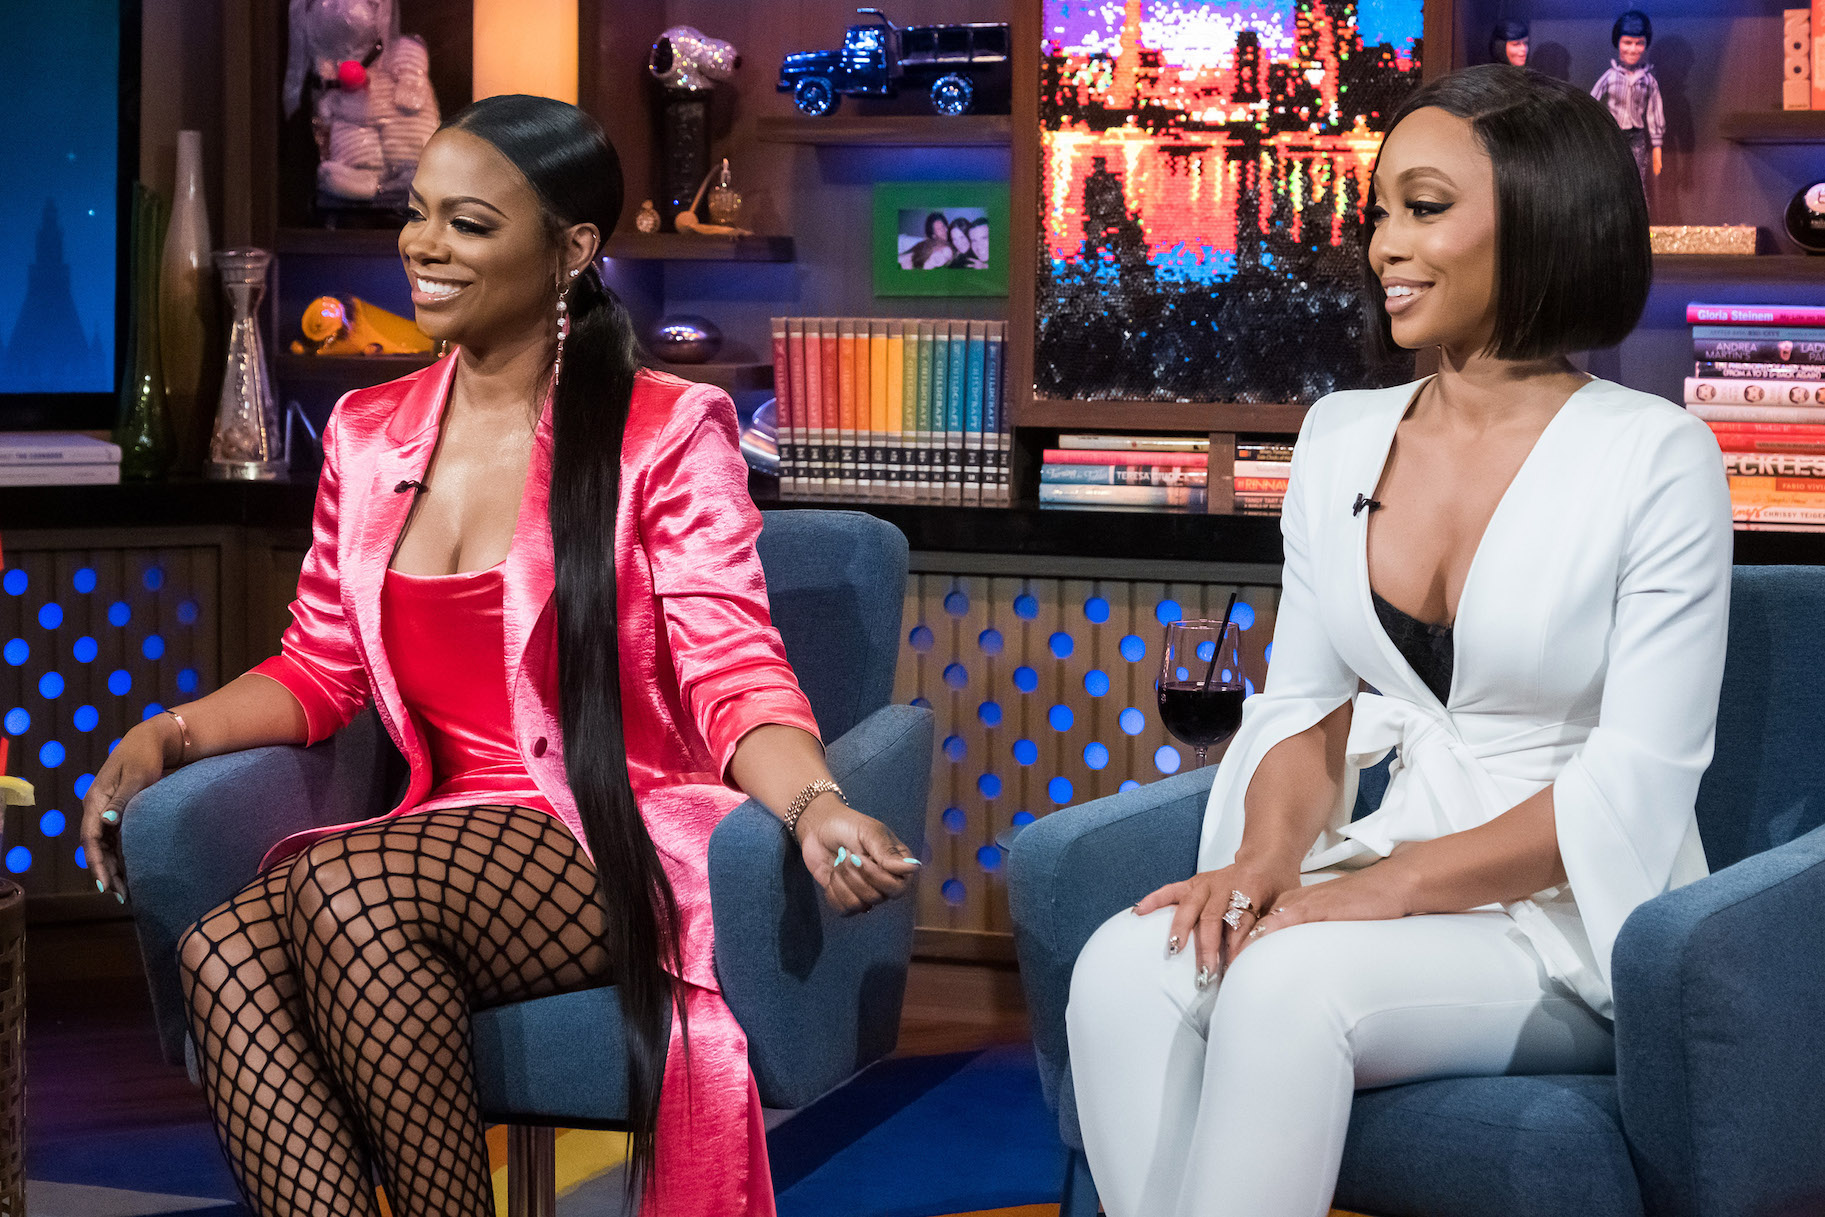 """kandi-burruss-welcomes-shamari-devoe-to-her-racy-show-as-a-special-guest"""